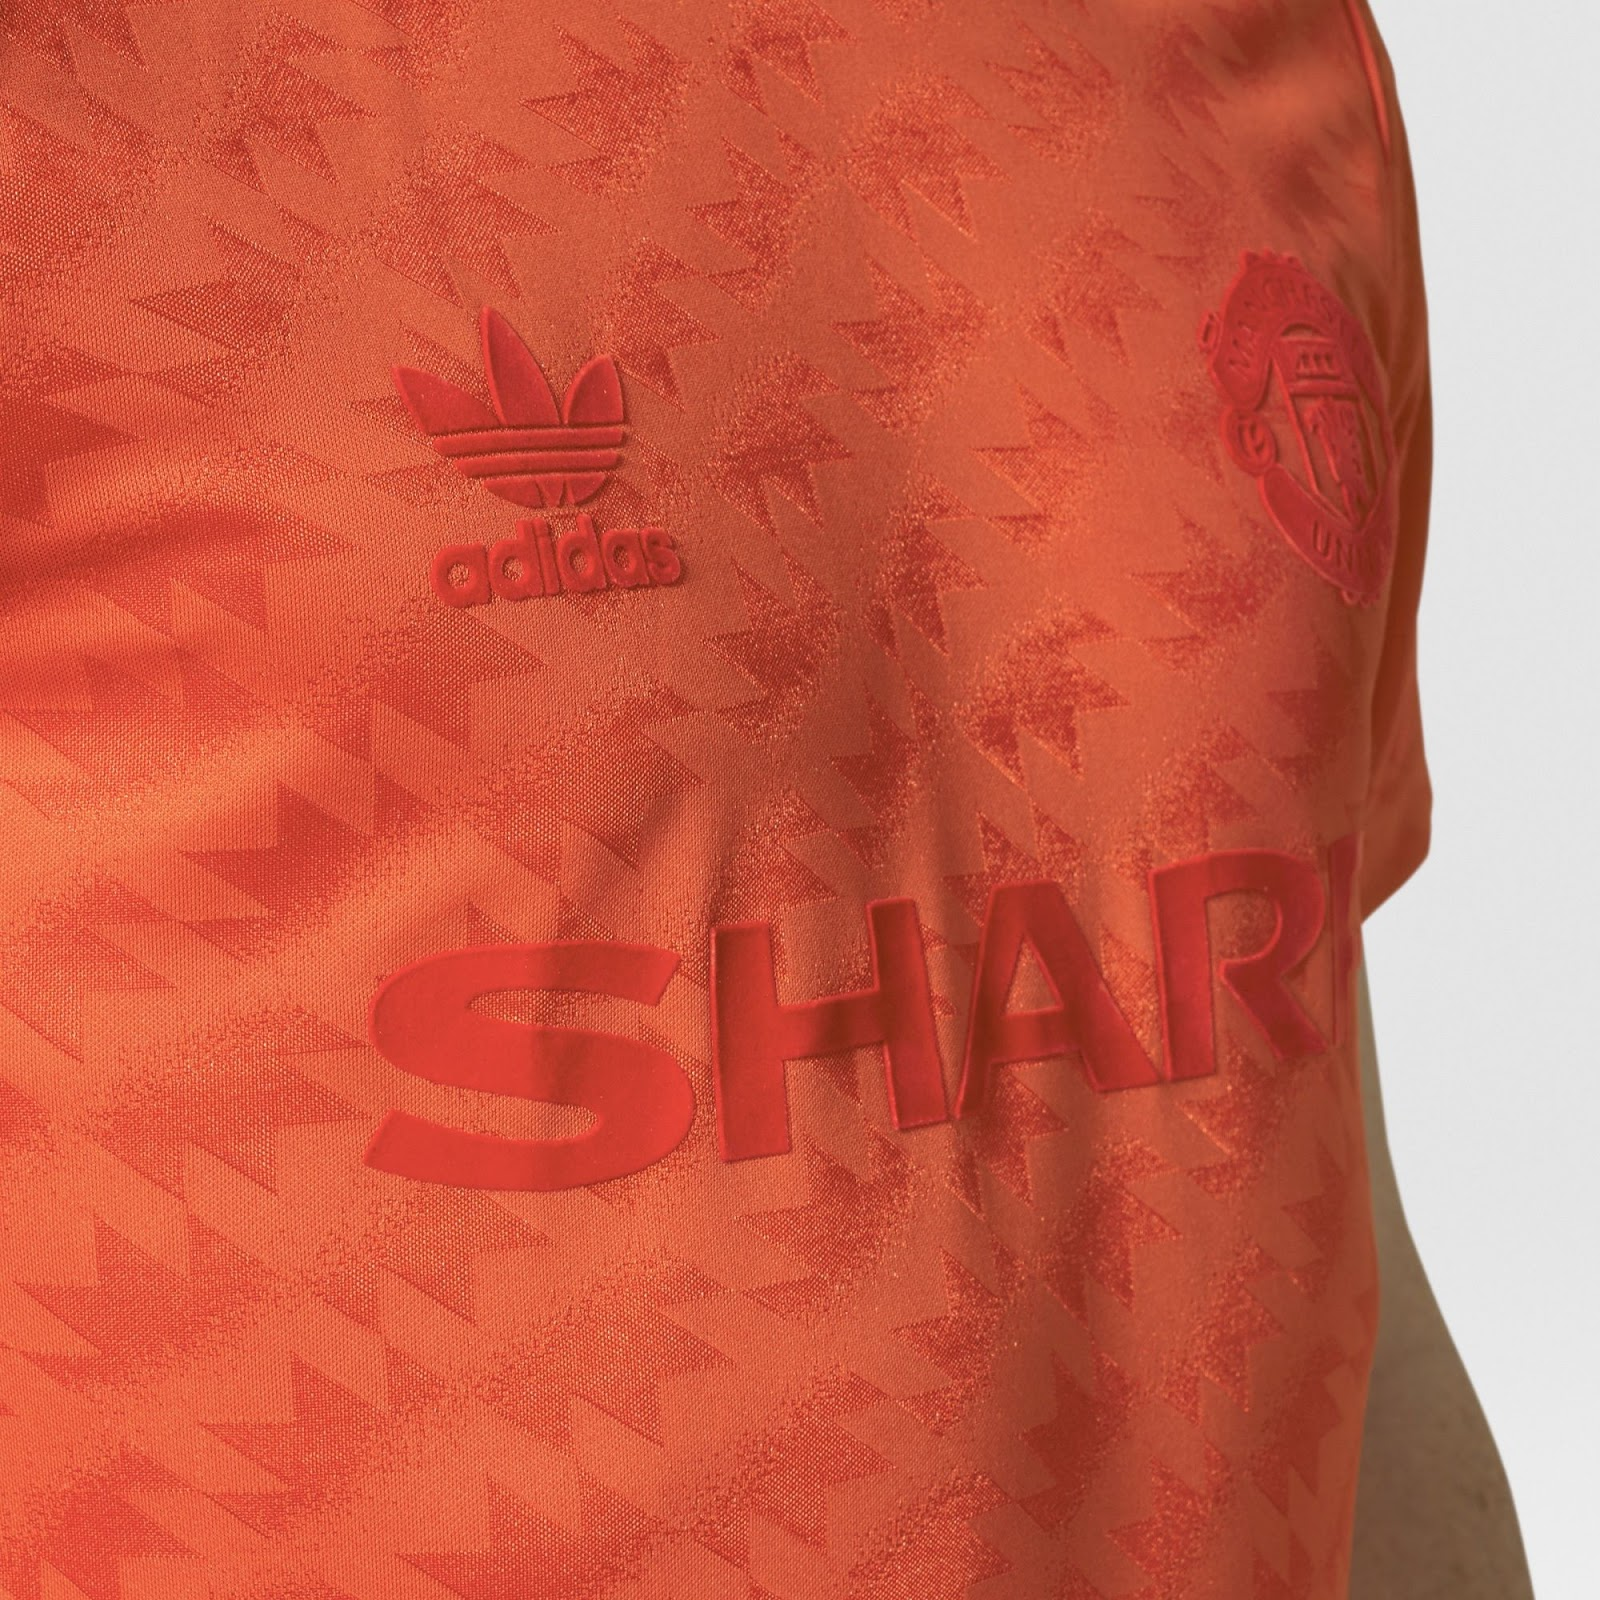 995dcf4c29f Retro Adidas Man Utd Shirt – EDGE Engineering and Consulting Limited